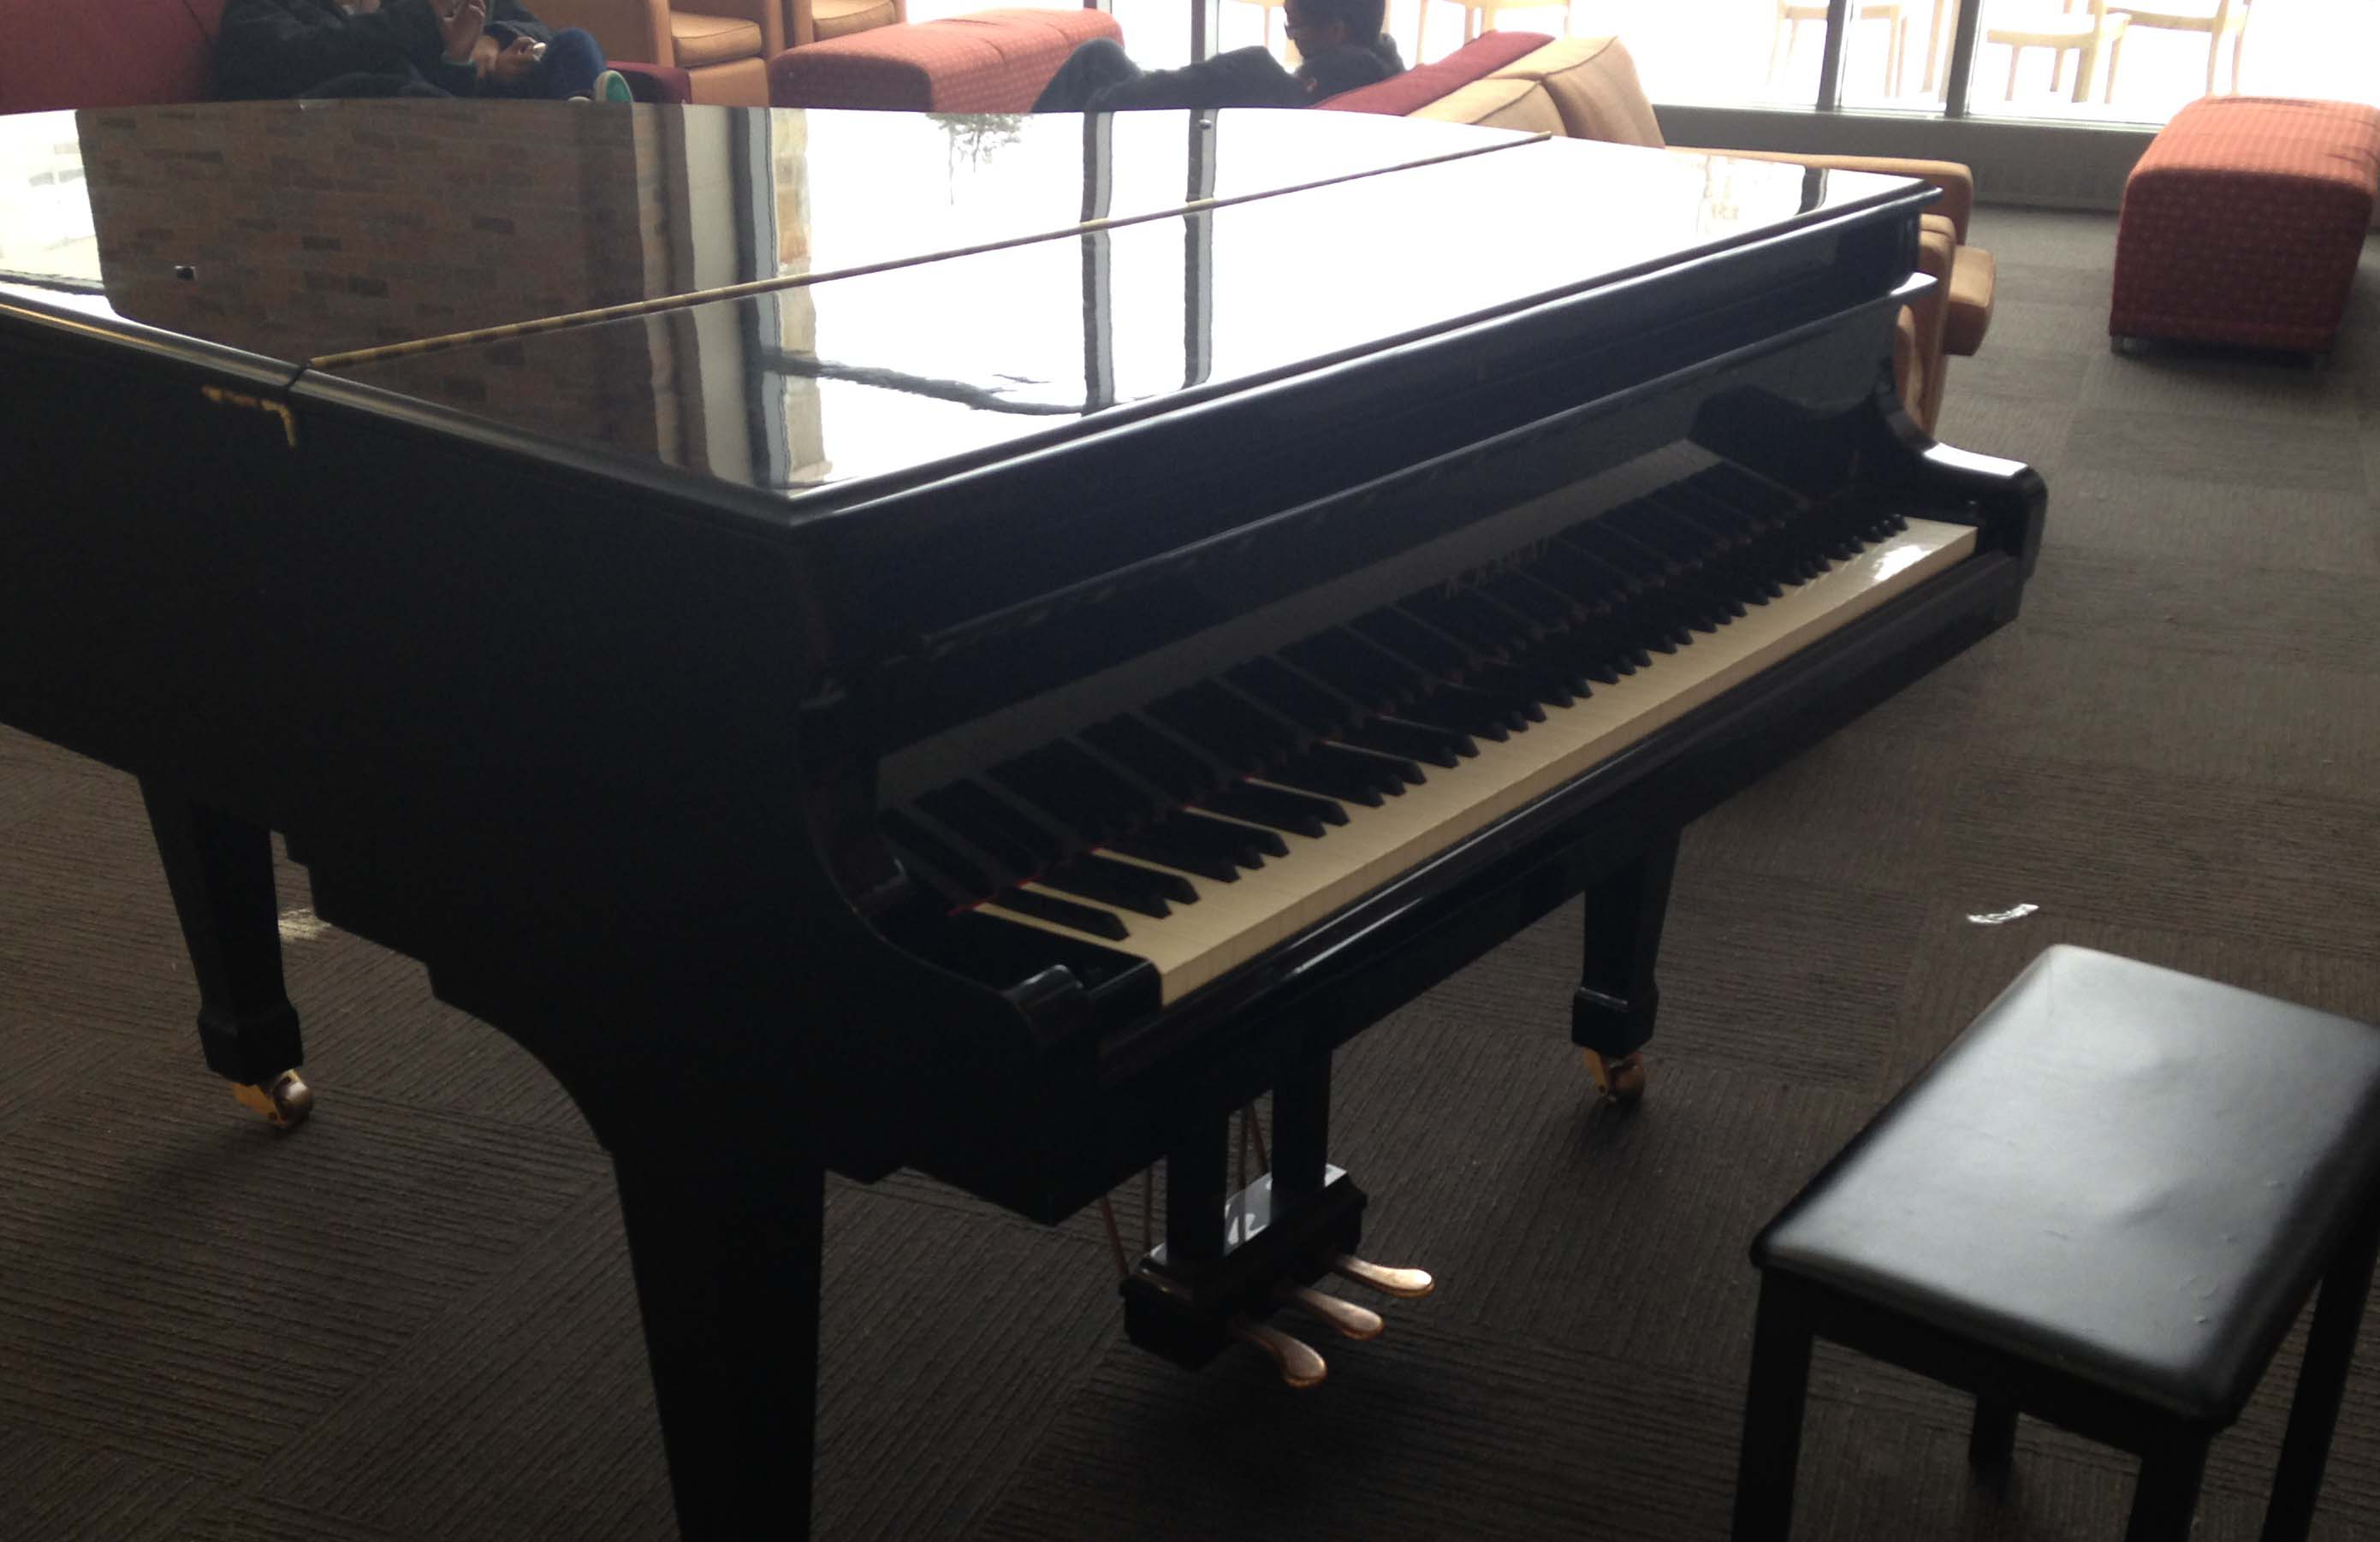 The DAC piano that students often play throughout the day.